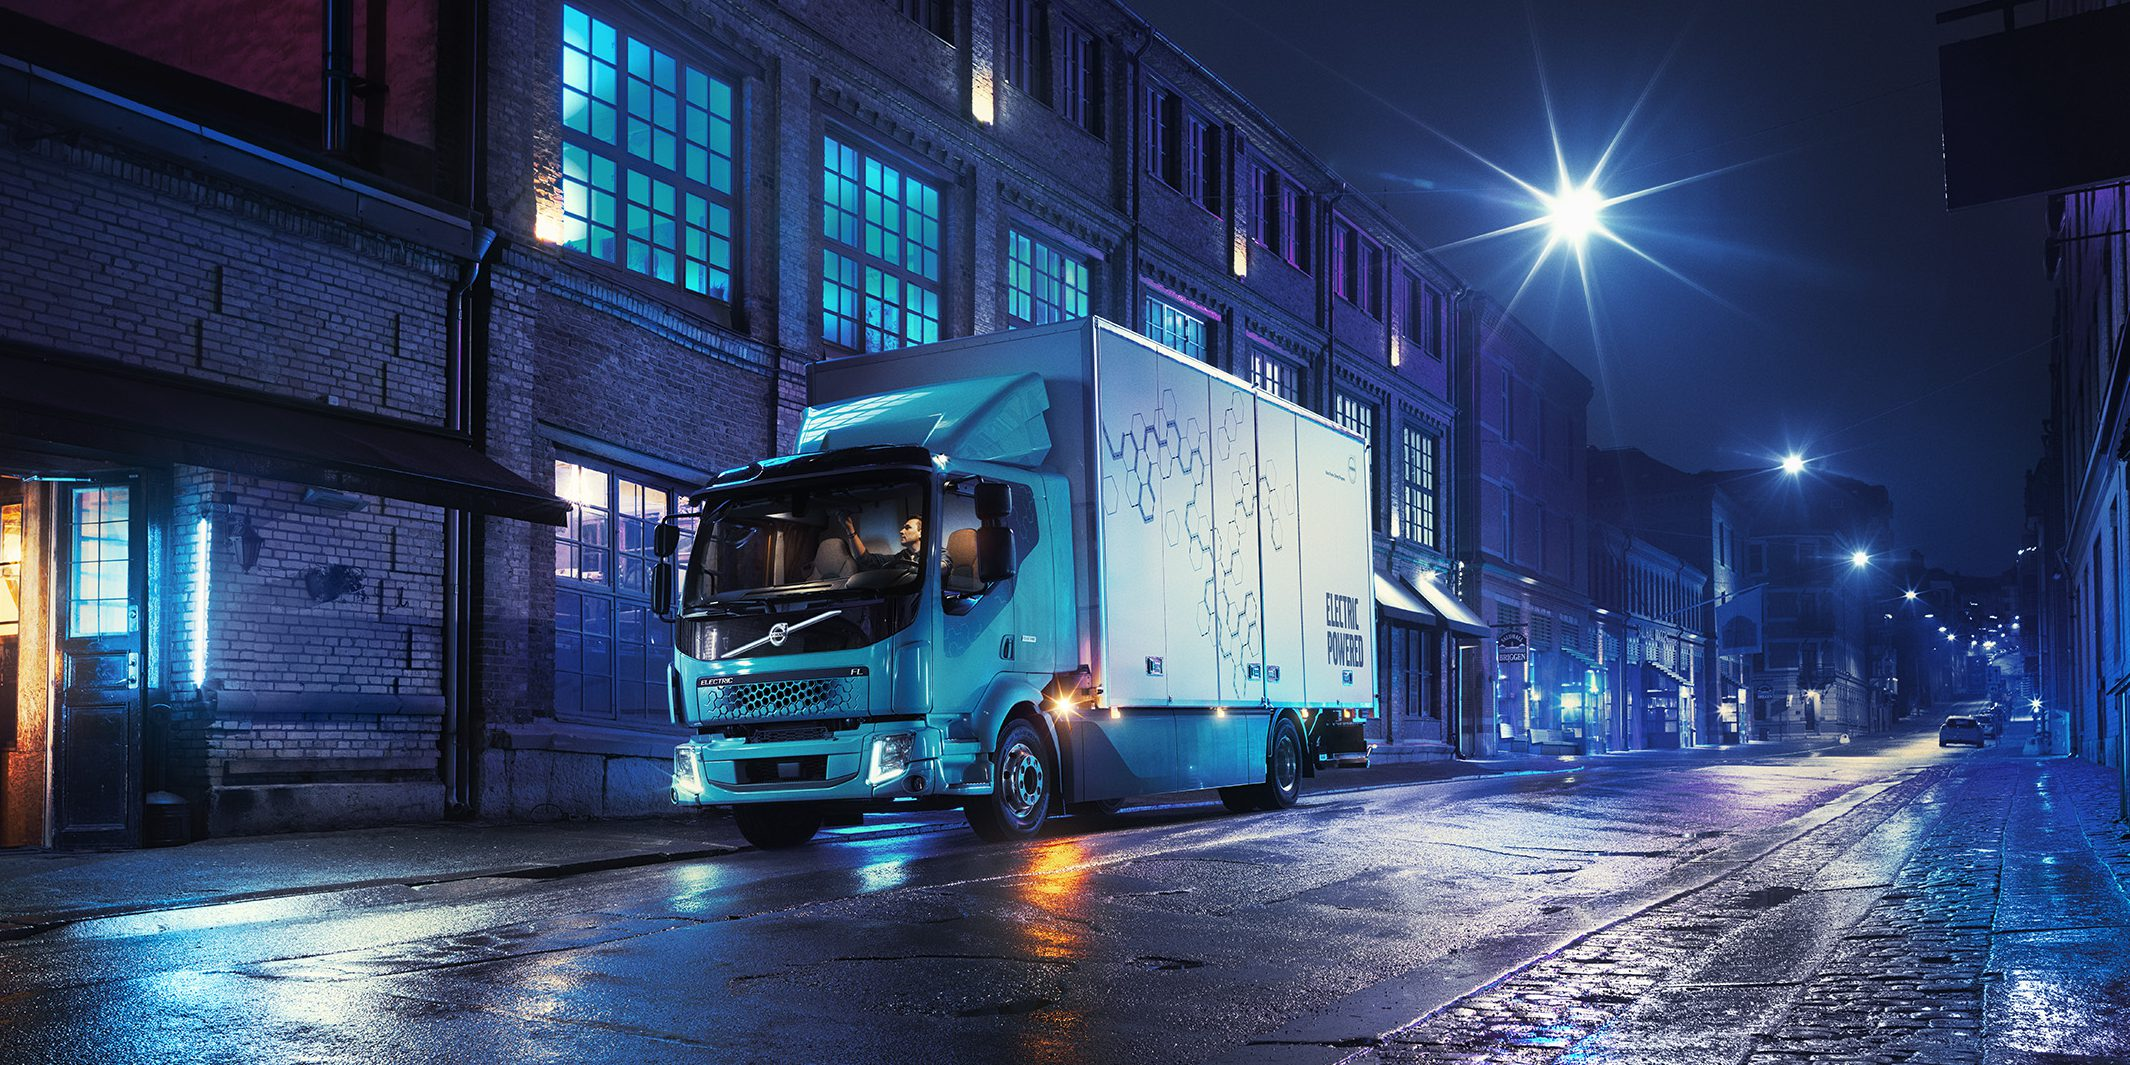 Volvo unveils its first all-electric truck with 'up to 300 km' (186 miles) of range - Electrek